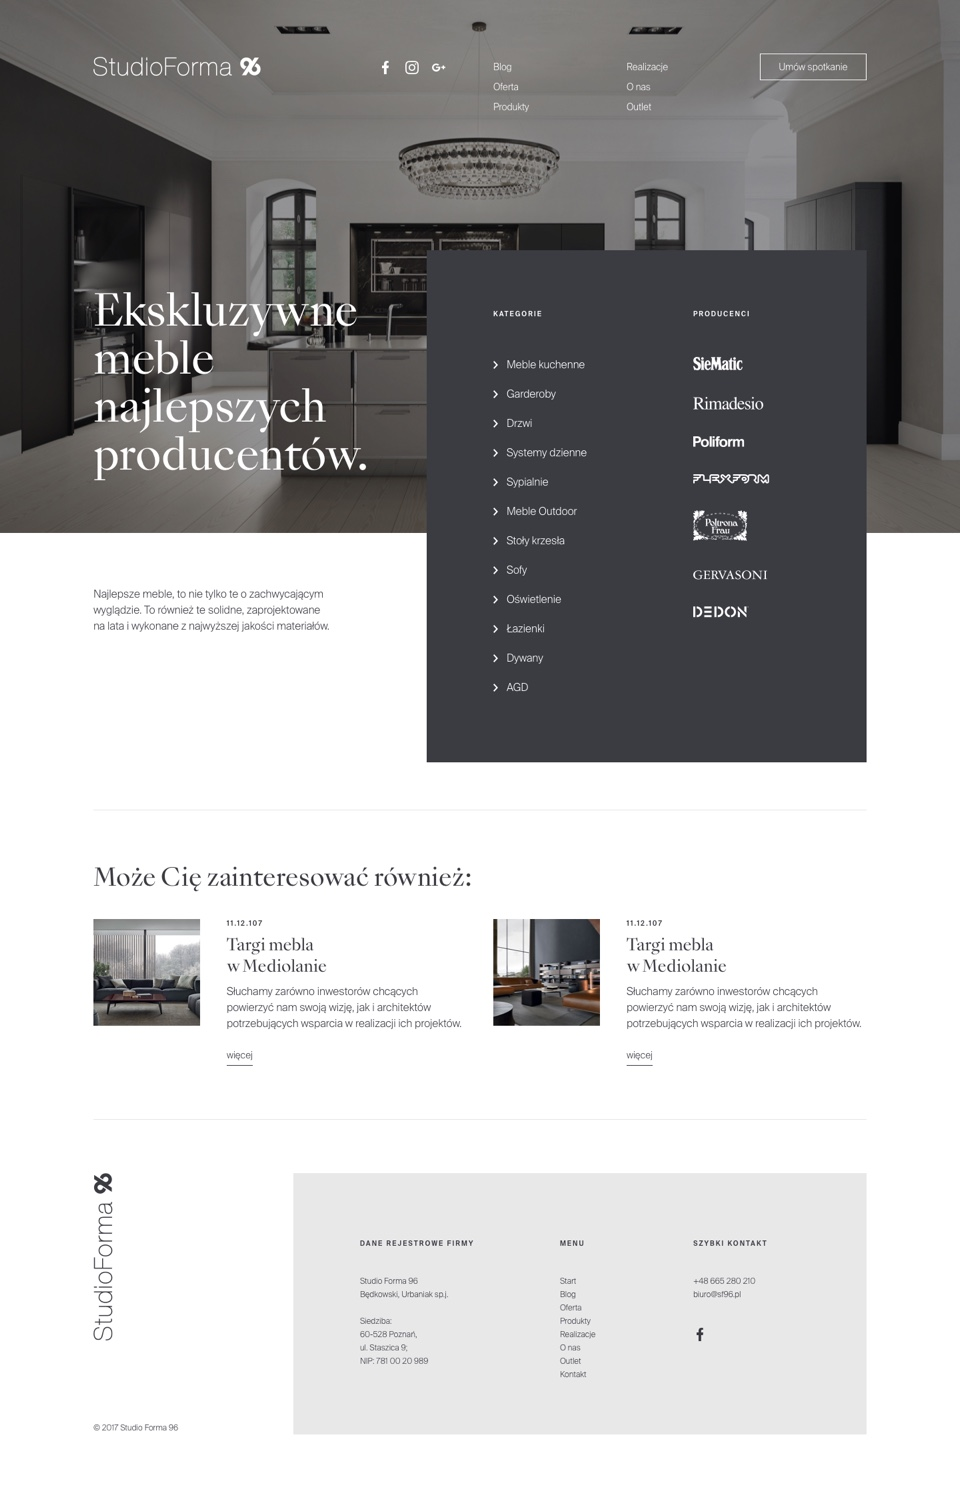 Products page - ui design - StudioForma 96 by Uniforma